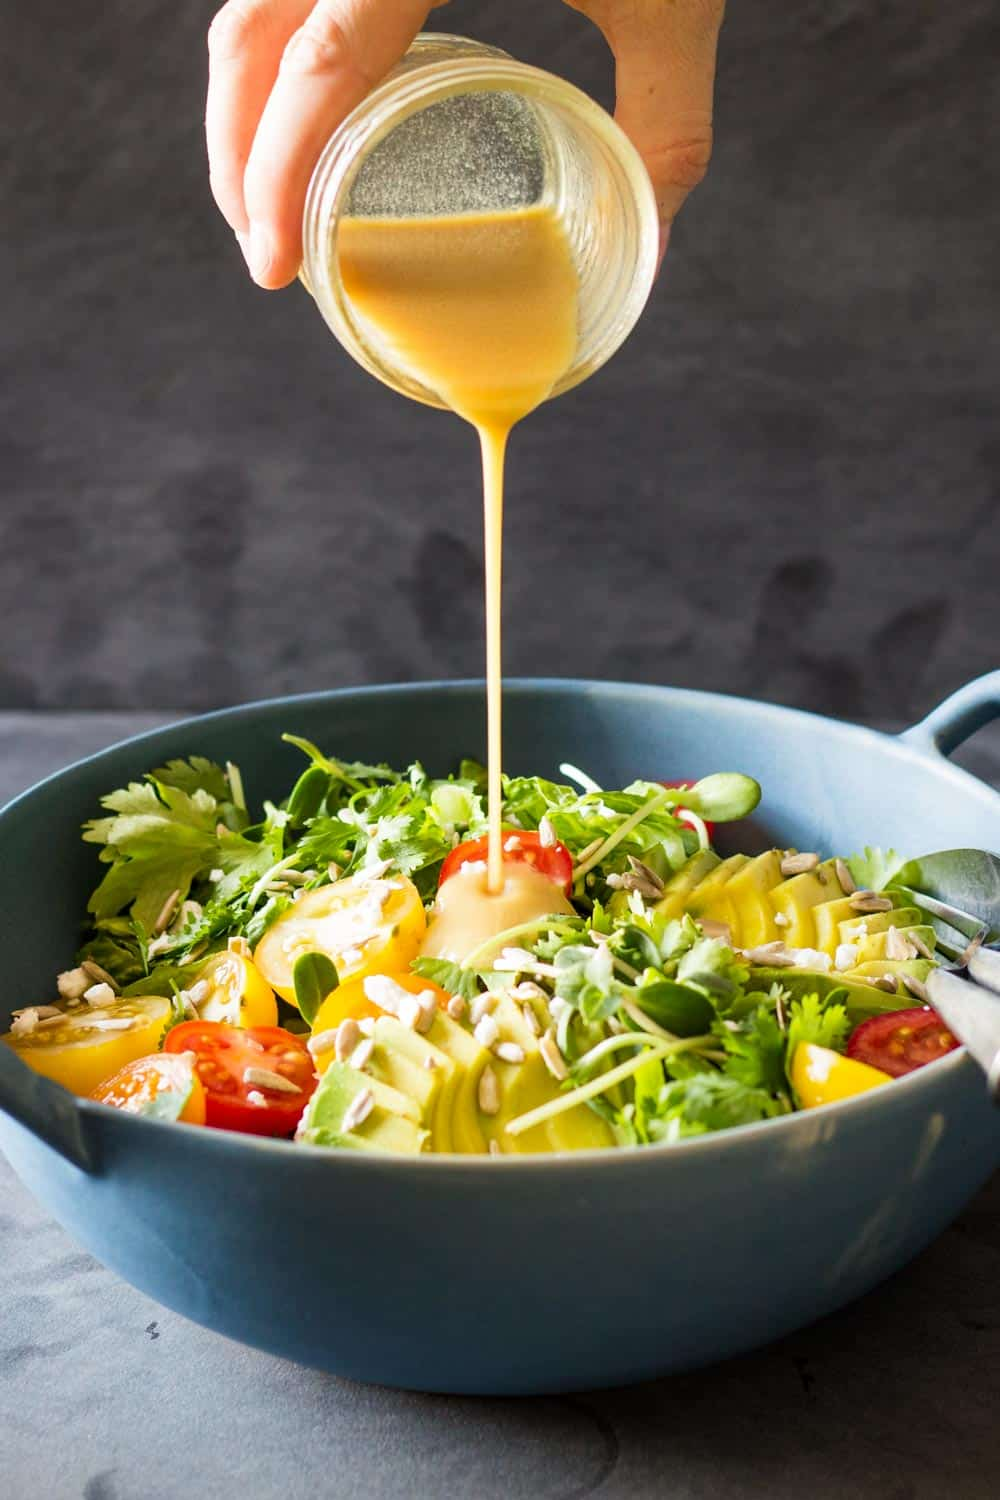 Honey lime dressing being poured over Mexican-Style Side Salad in a blue bowl.